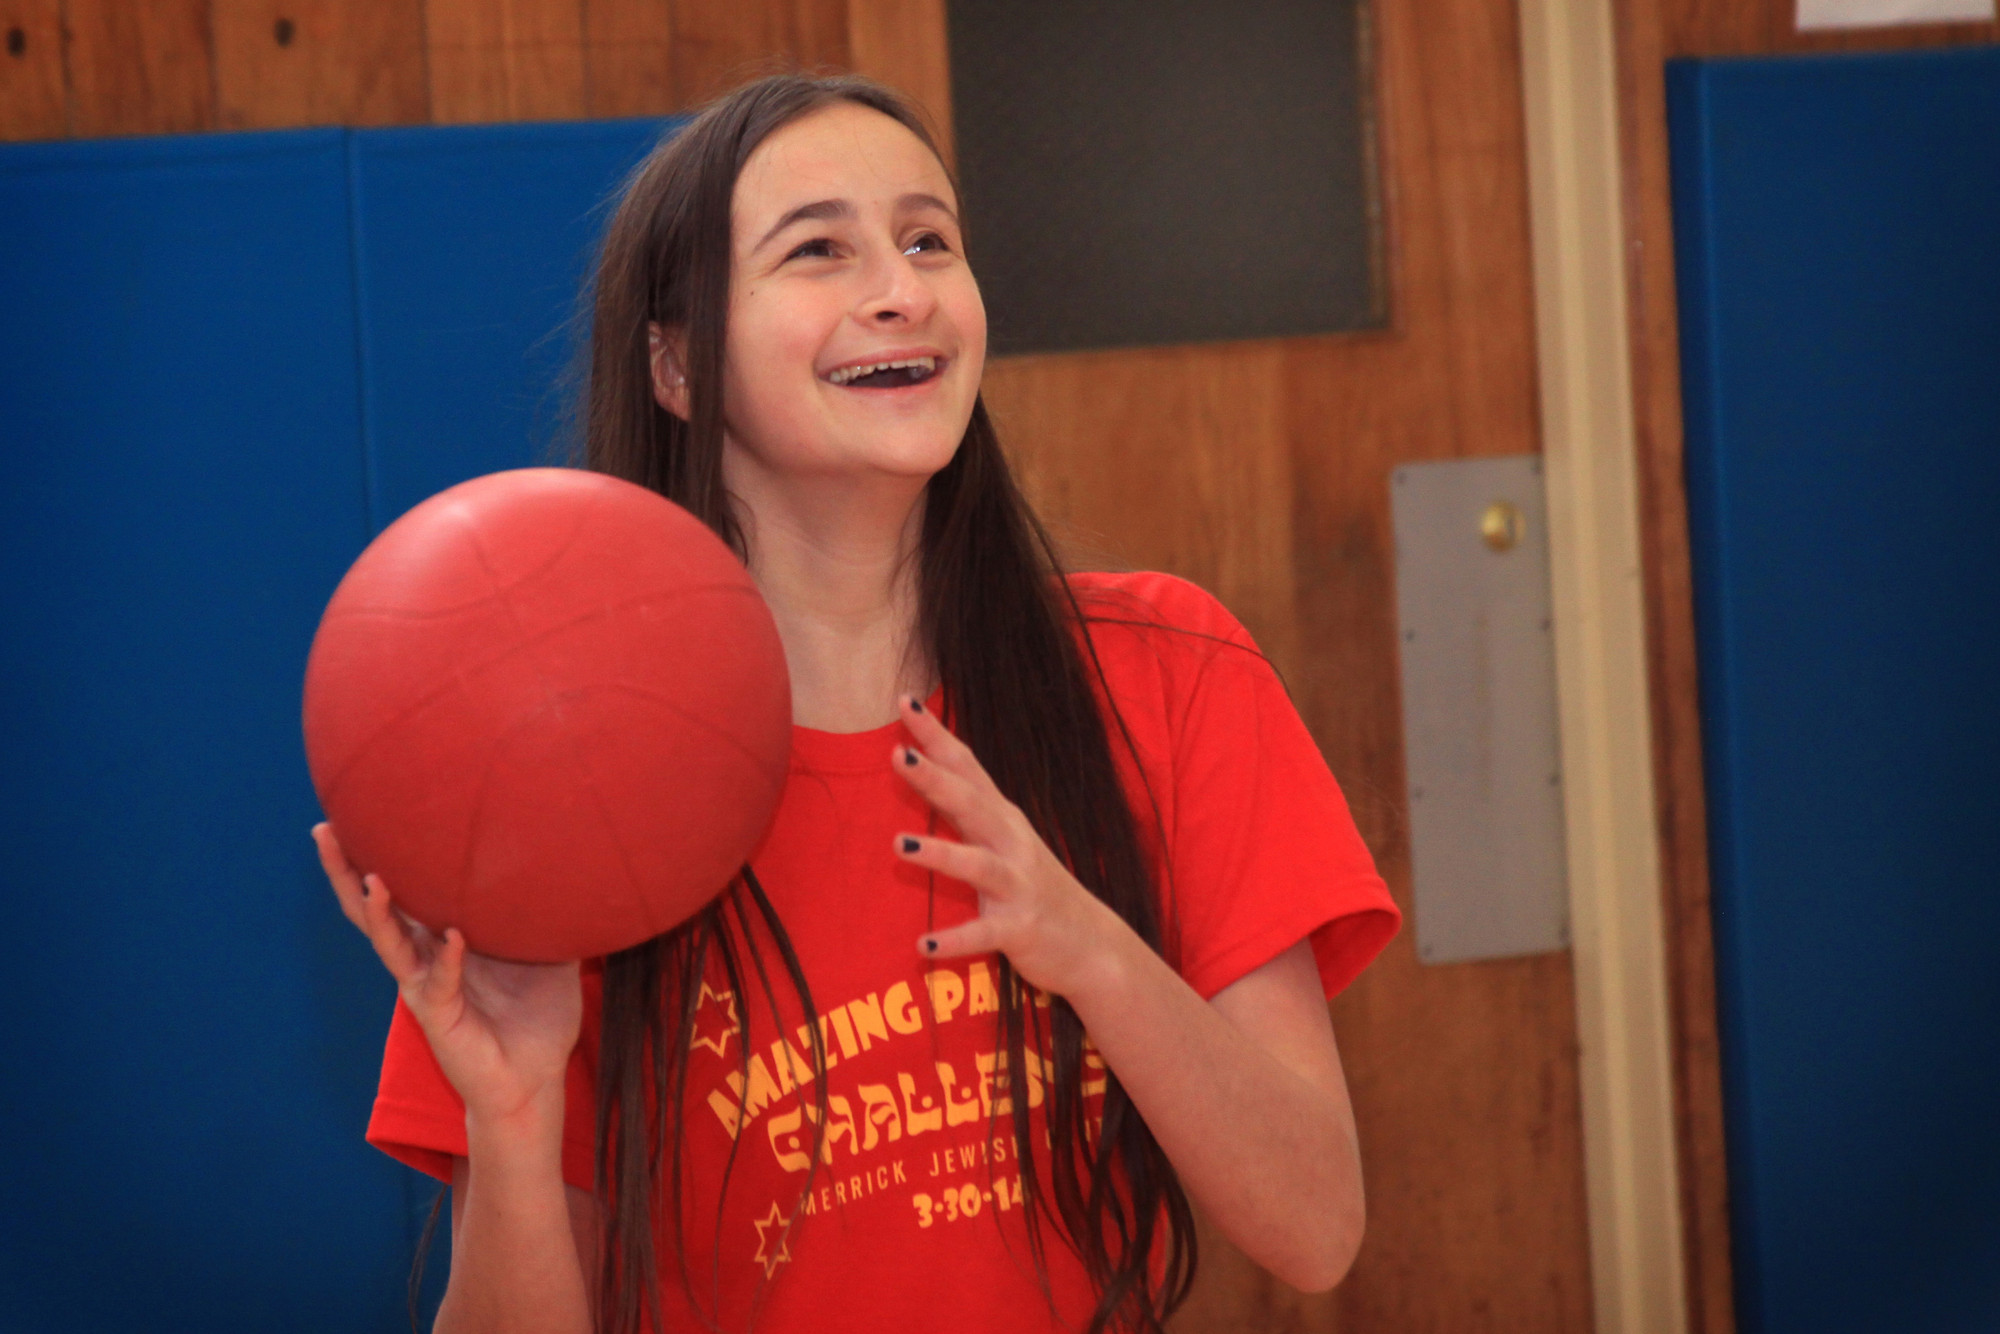 Andie Ofsink, 13, competed in a basketball shooting competition at Levy-Lakeside Elementary School during the challenge.